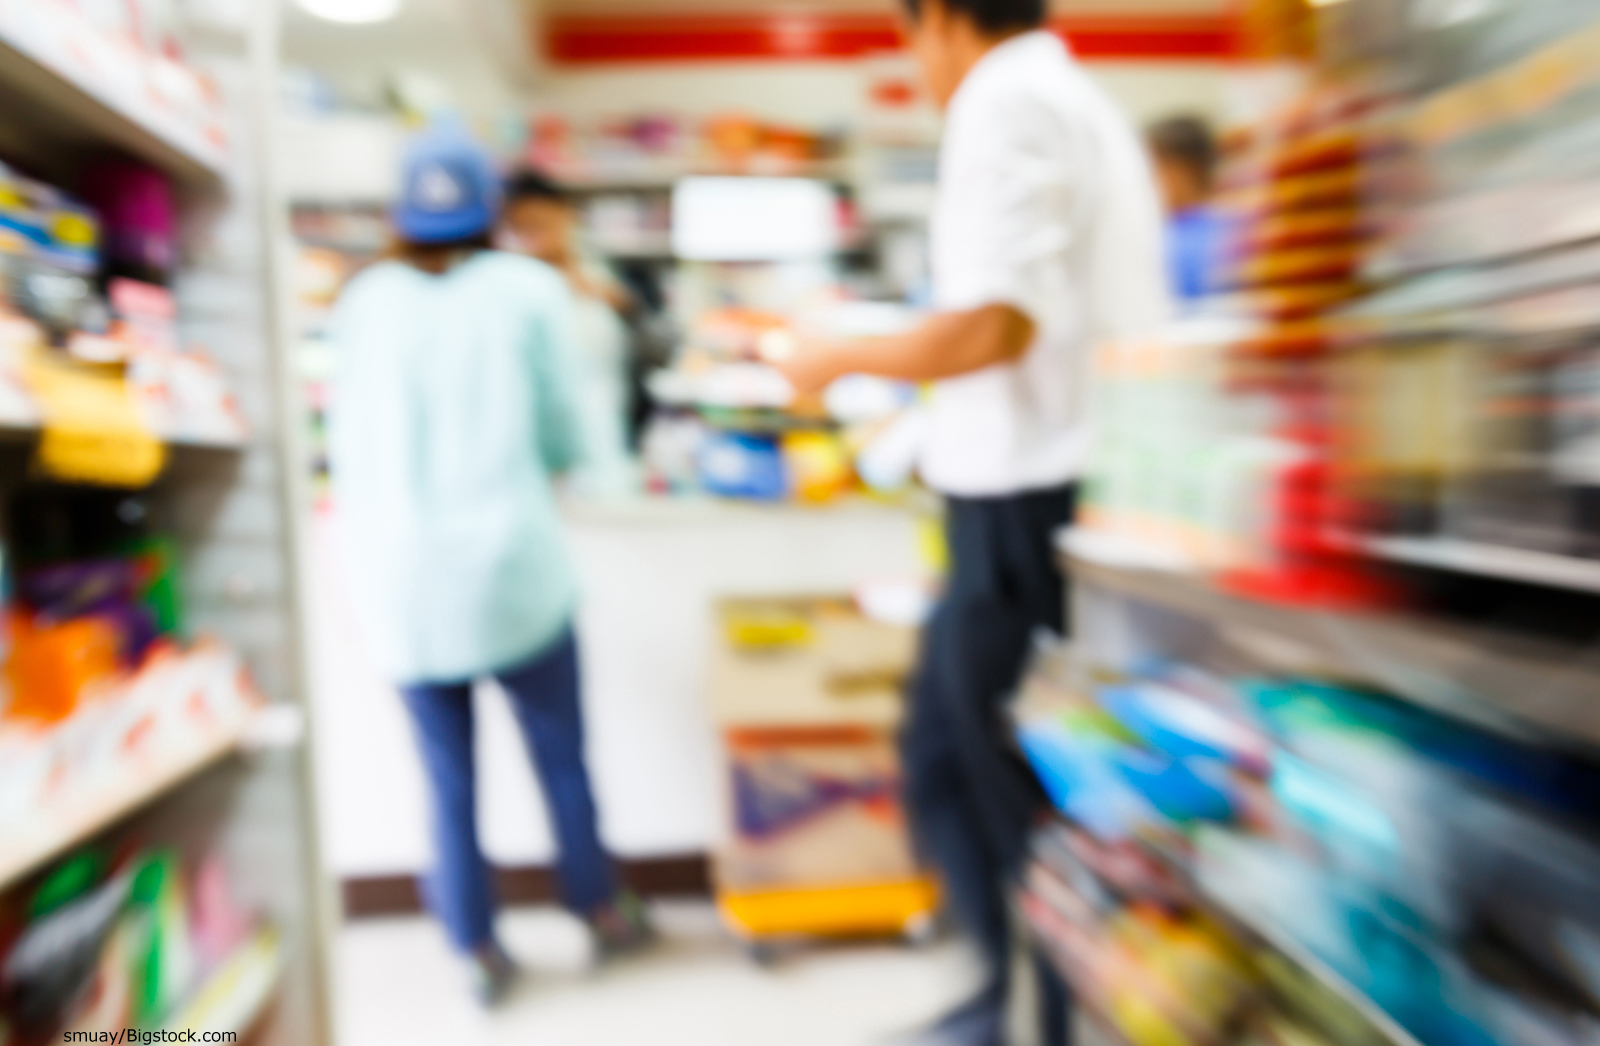 Retail Security on a Budget: You Don't Have to Sacrifice Commercial Security Camera Image Quality